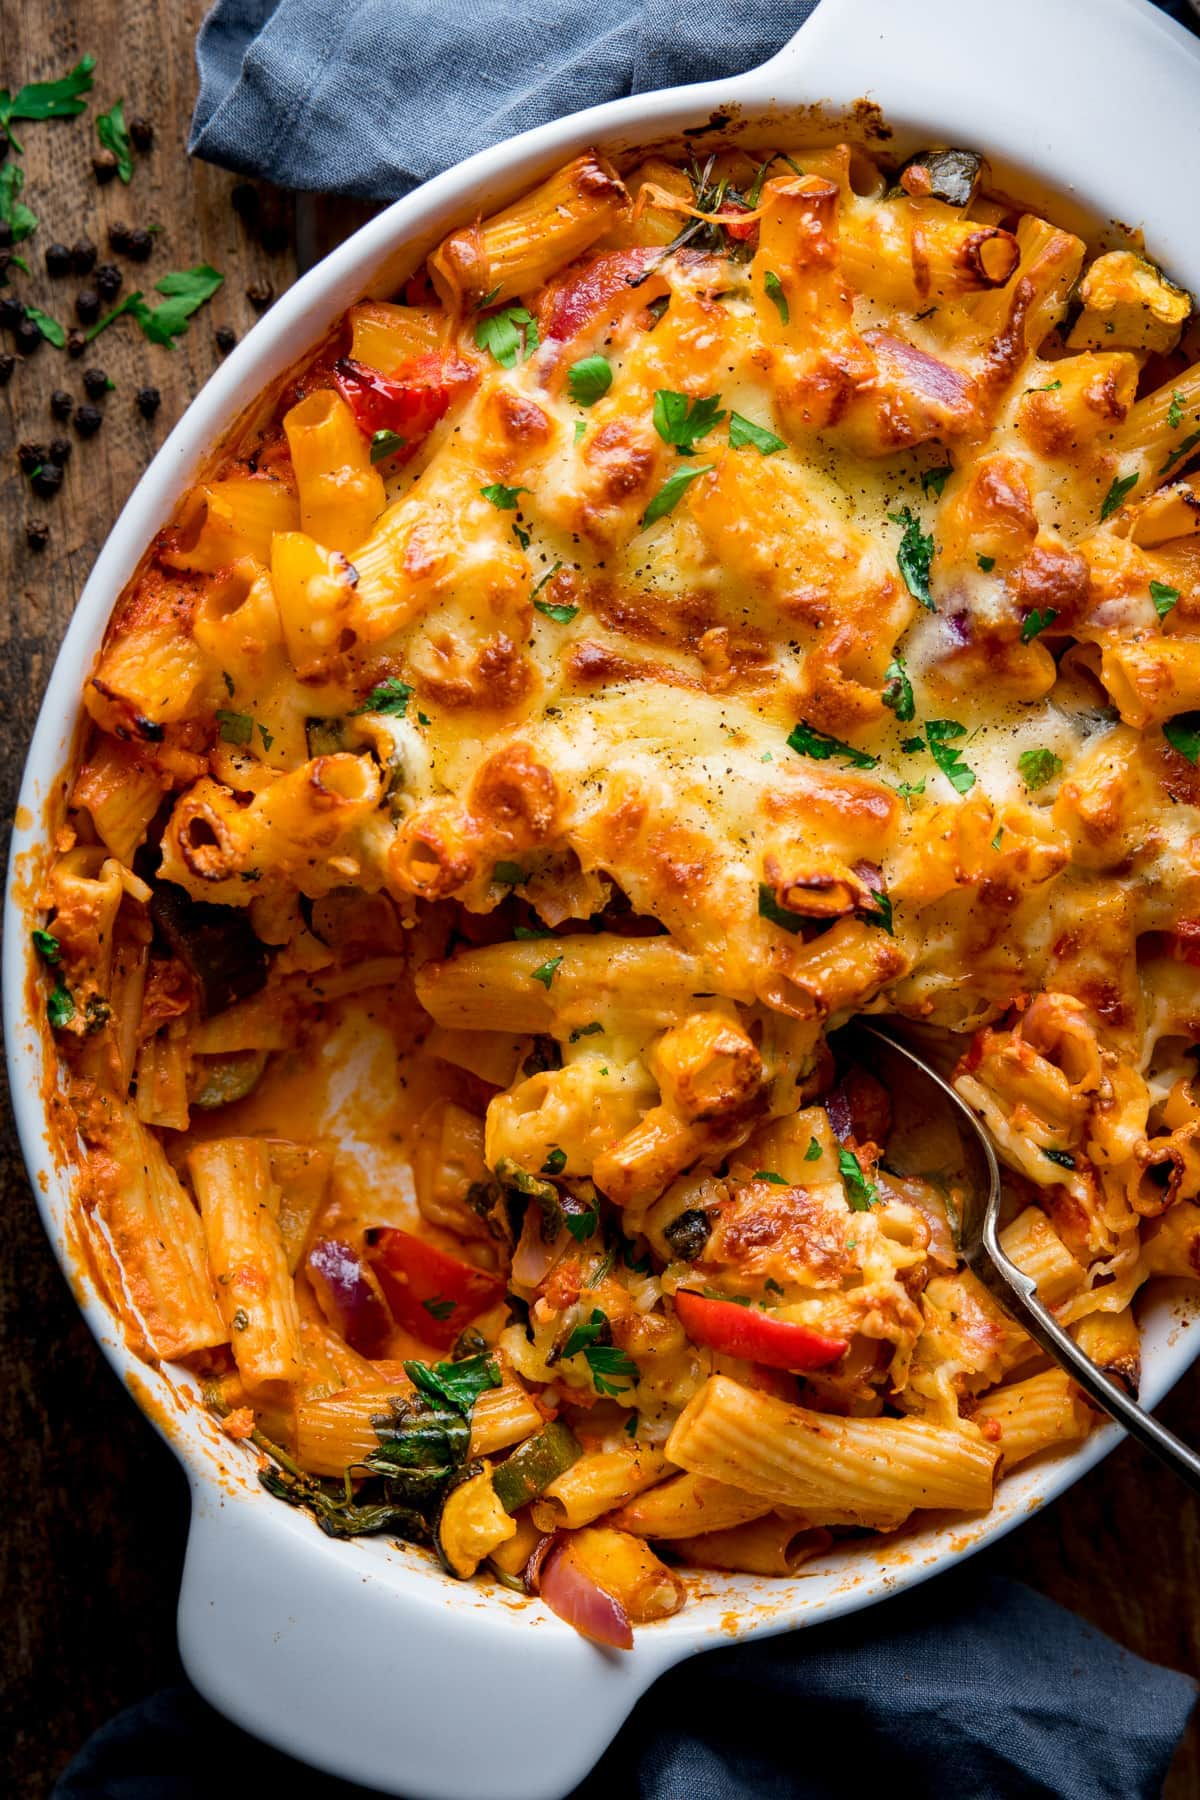 Overhead image of vegetable pasta bake with a spoonful taken out